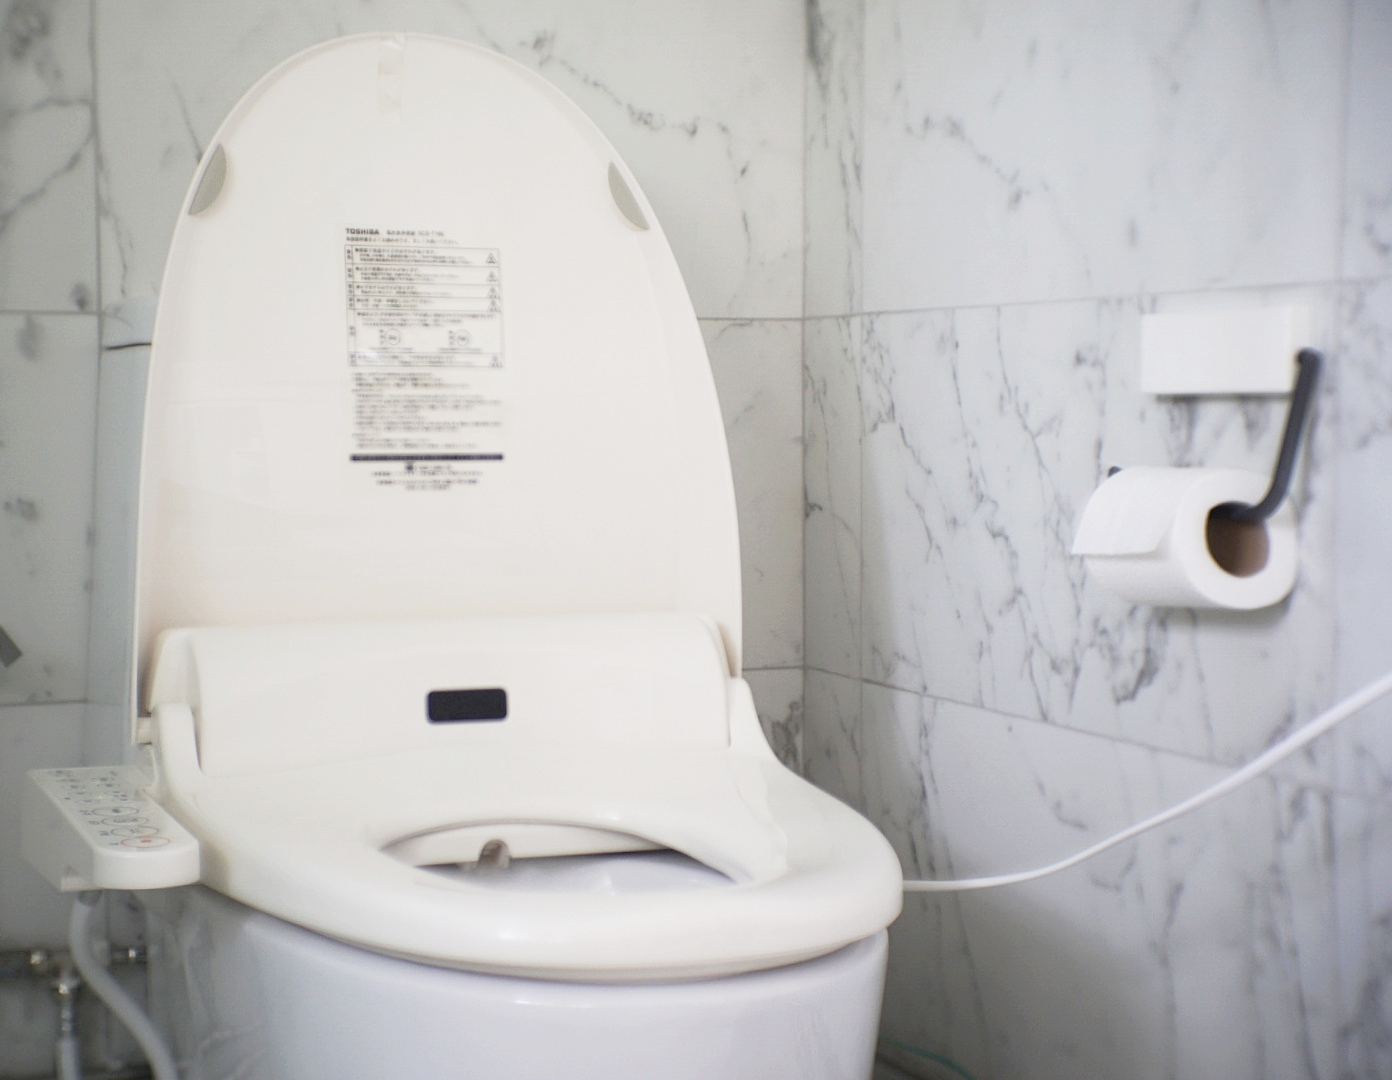 Toshiba SCS-T160 automated japanese toilet seat